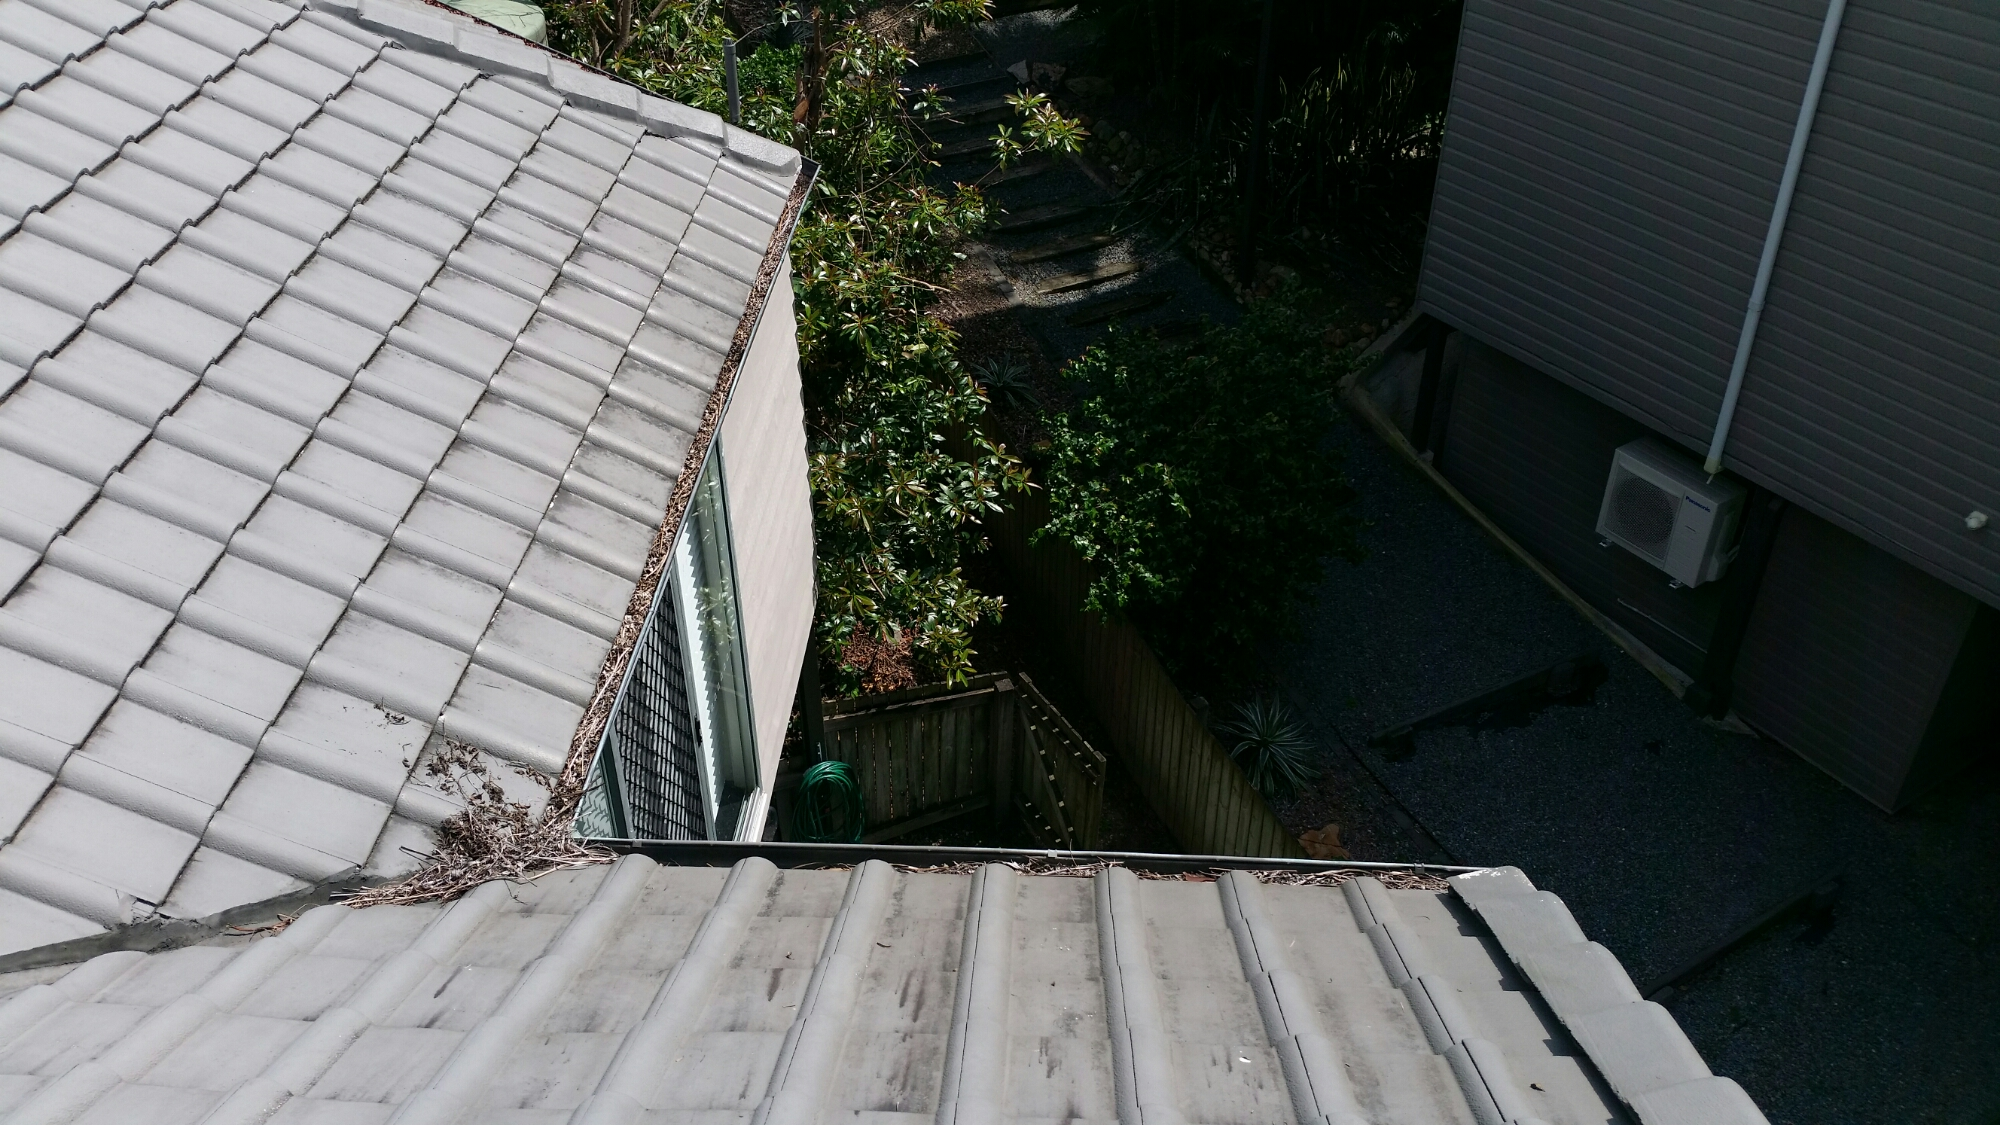 Before ICU Gutter Cleaning in Kenmore Hills - 4